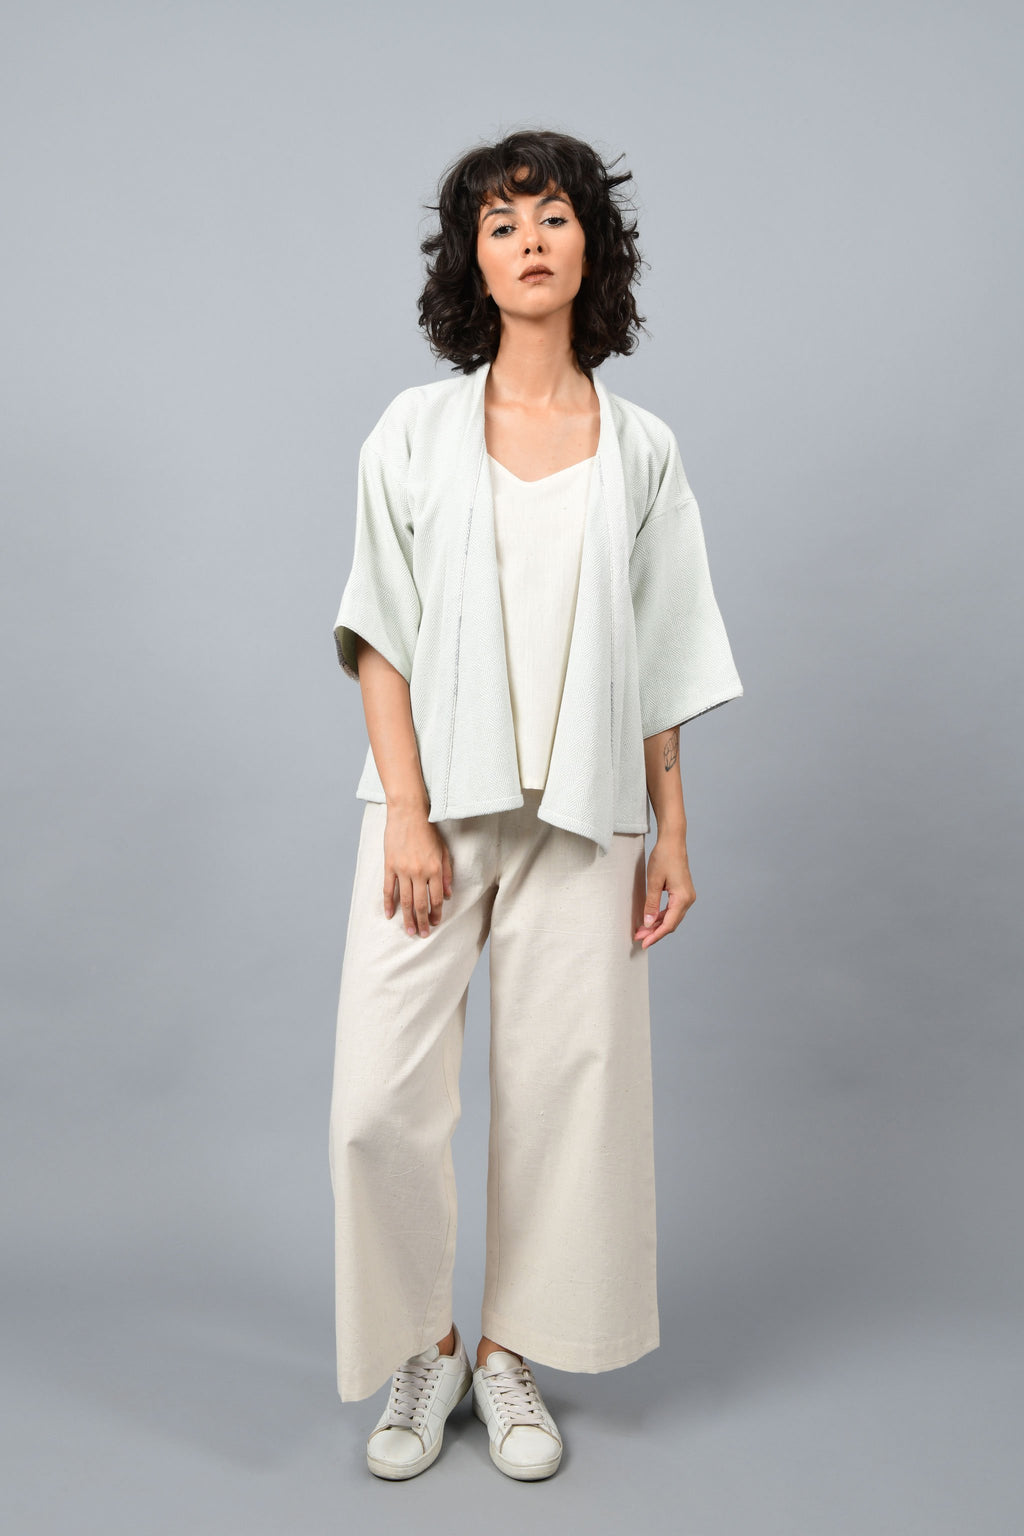 Model wearing anti-fit short grey shrug made in pointed twill with handspun and handwoven khadi cotton. Paired with off-white spaghetti, palazzos and white shoes.